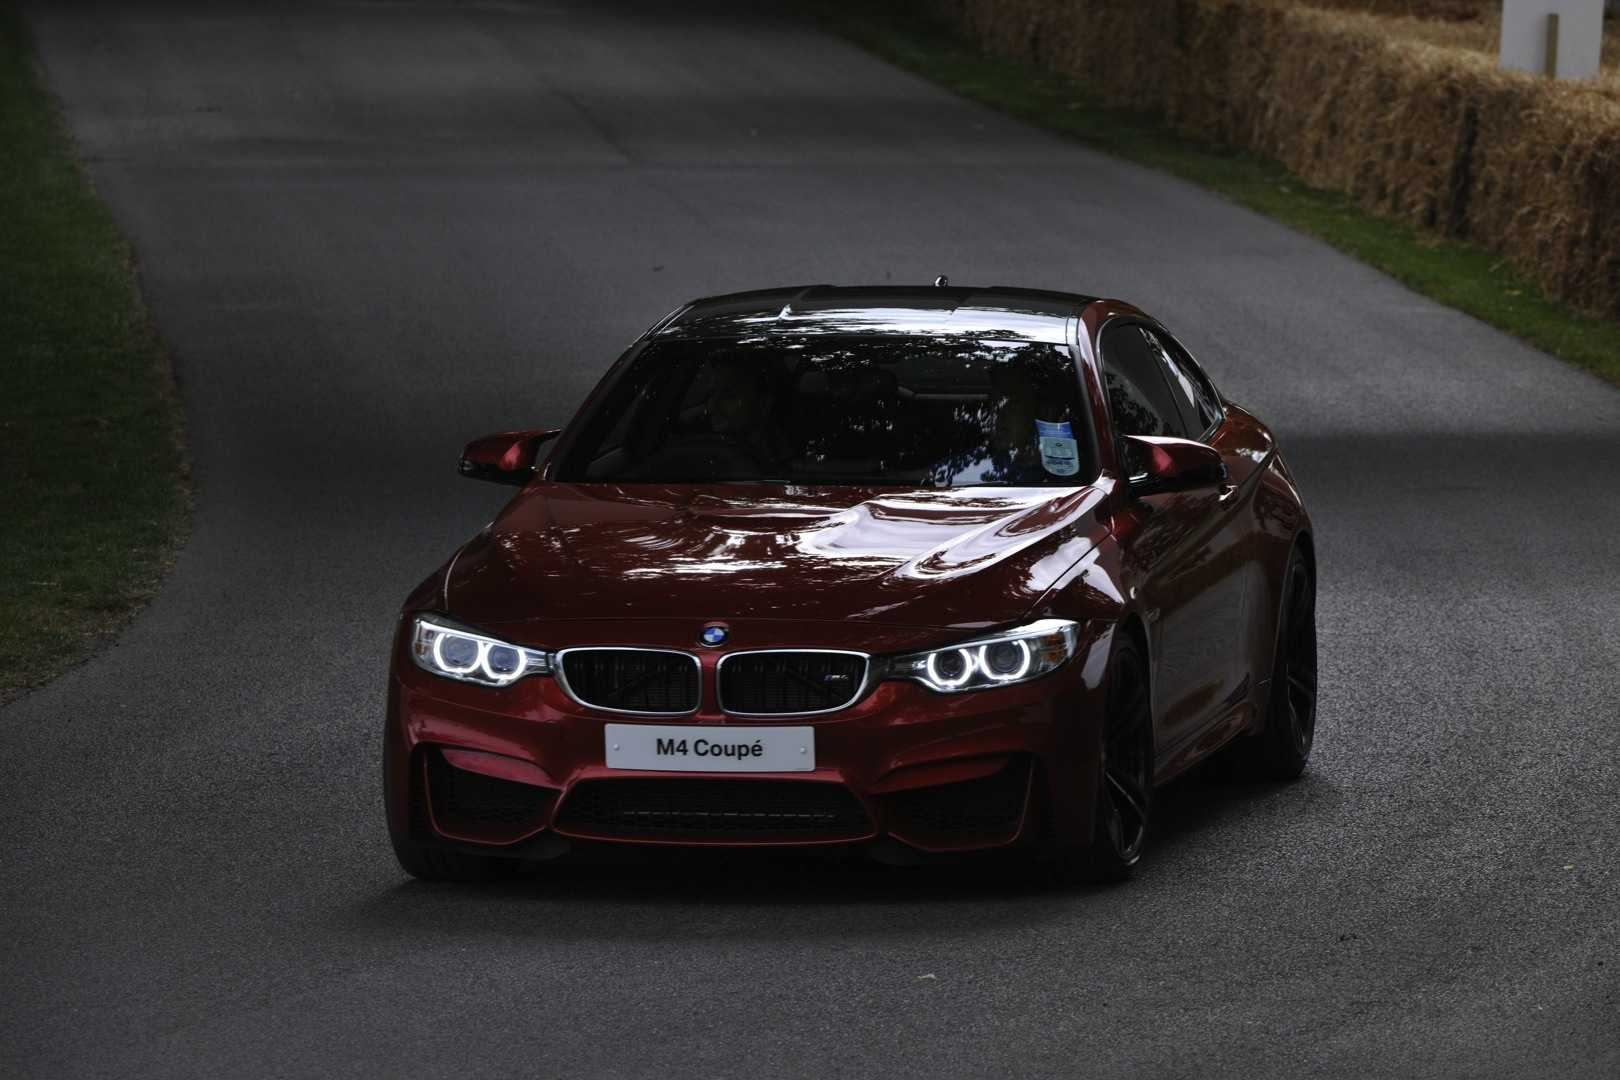 Most Wanted Bmw M4 Sports Coupe To Be Released Soon In The U S